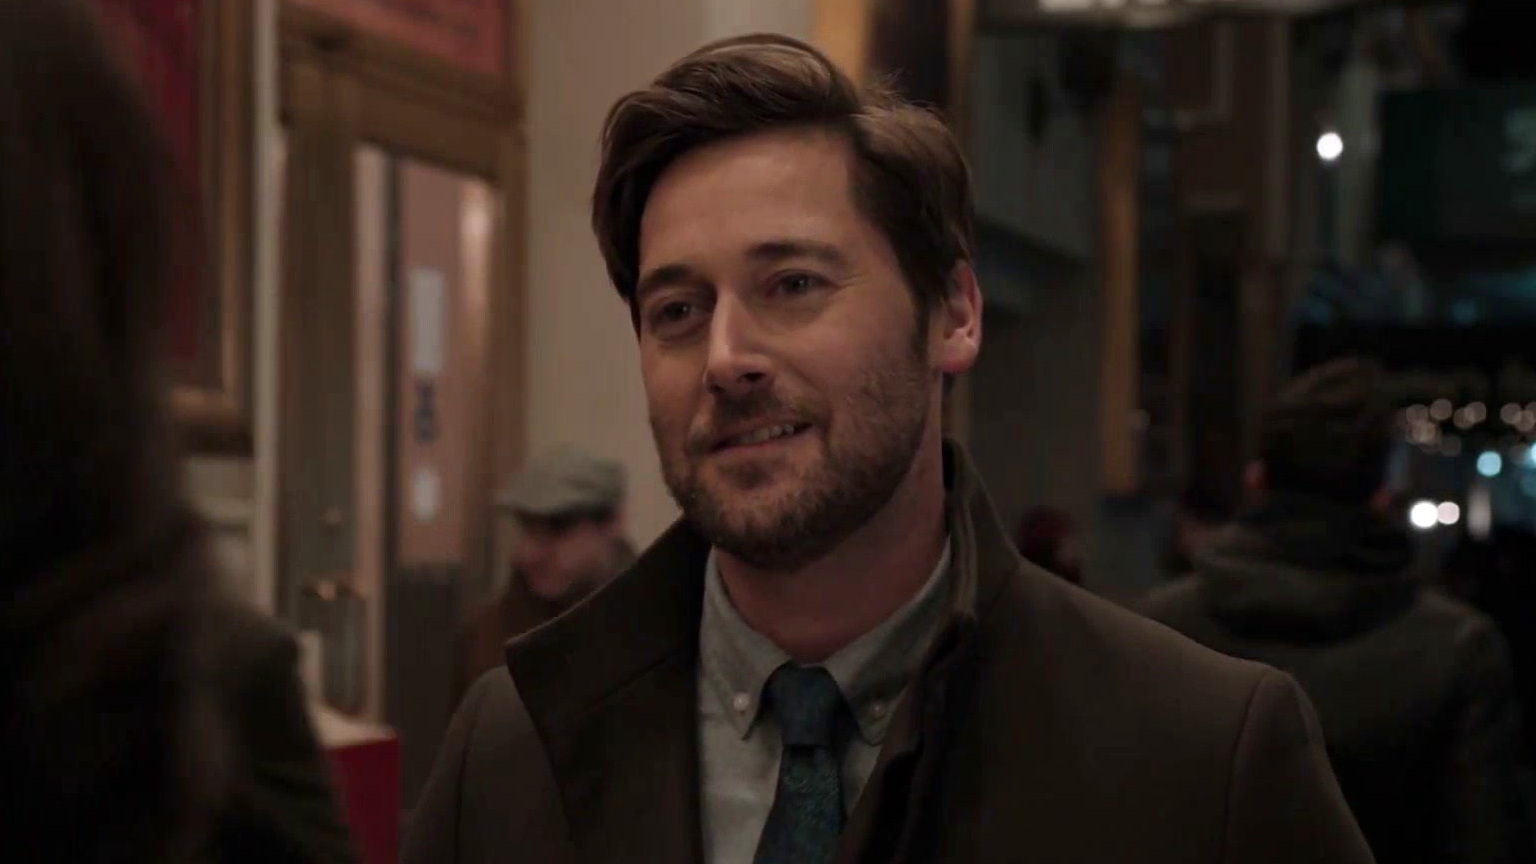 New Amsterdam: Max Finds Out The Truth About Reynolds